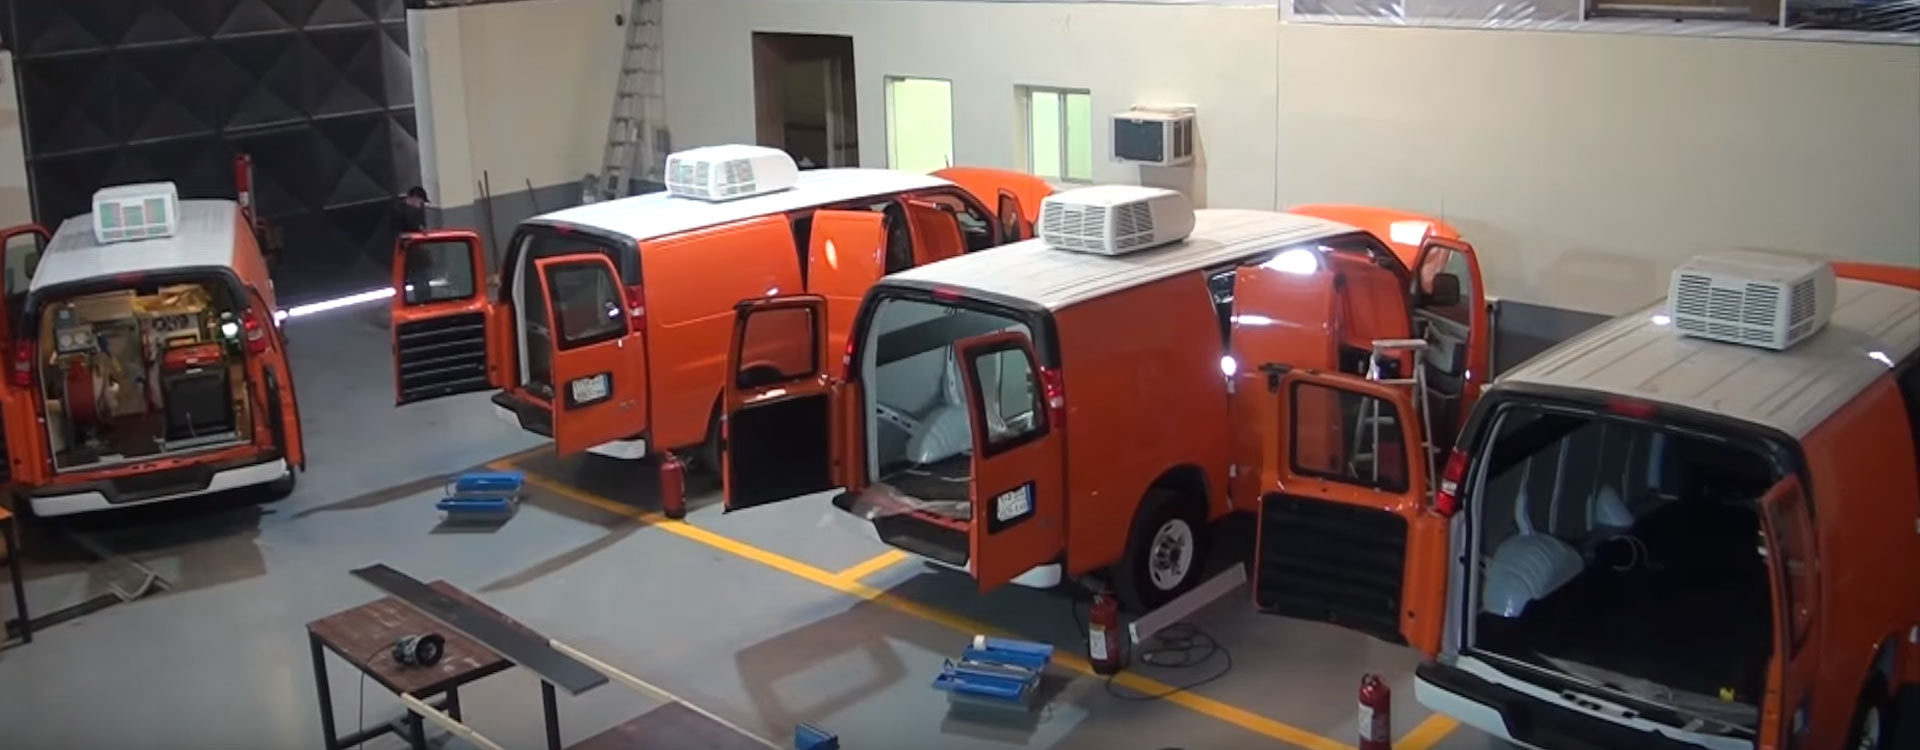 Cable Test Vans Equipping Services Saudi Arabia